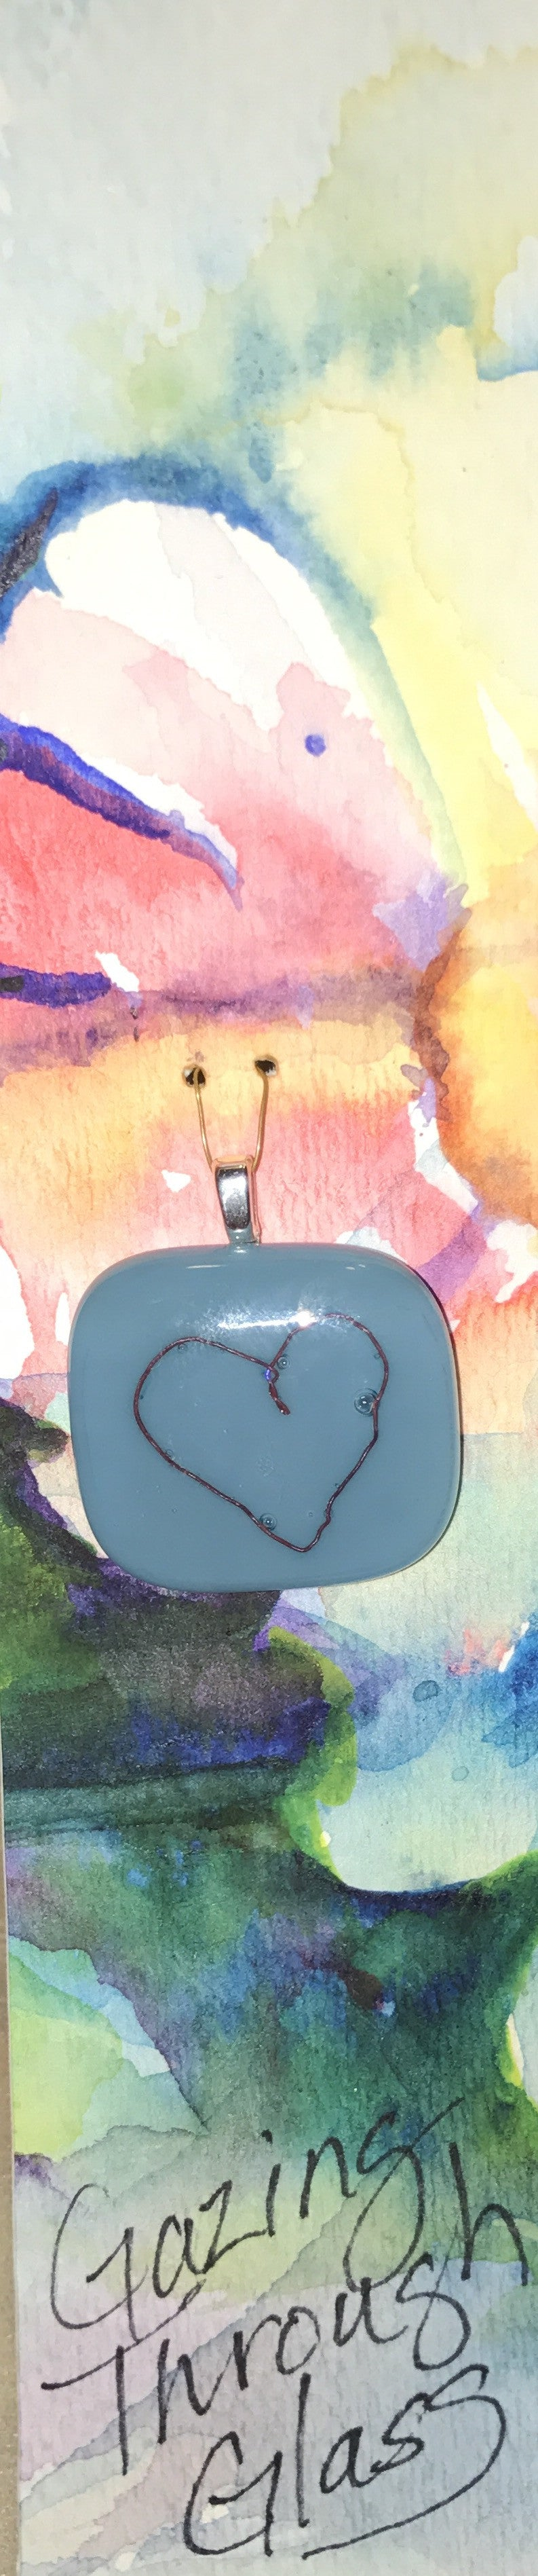 Holding Your Heart Pendant